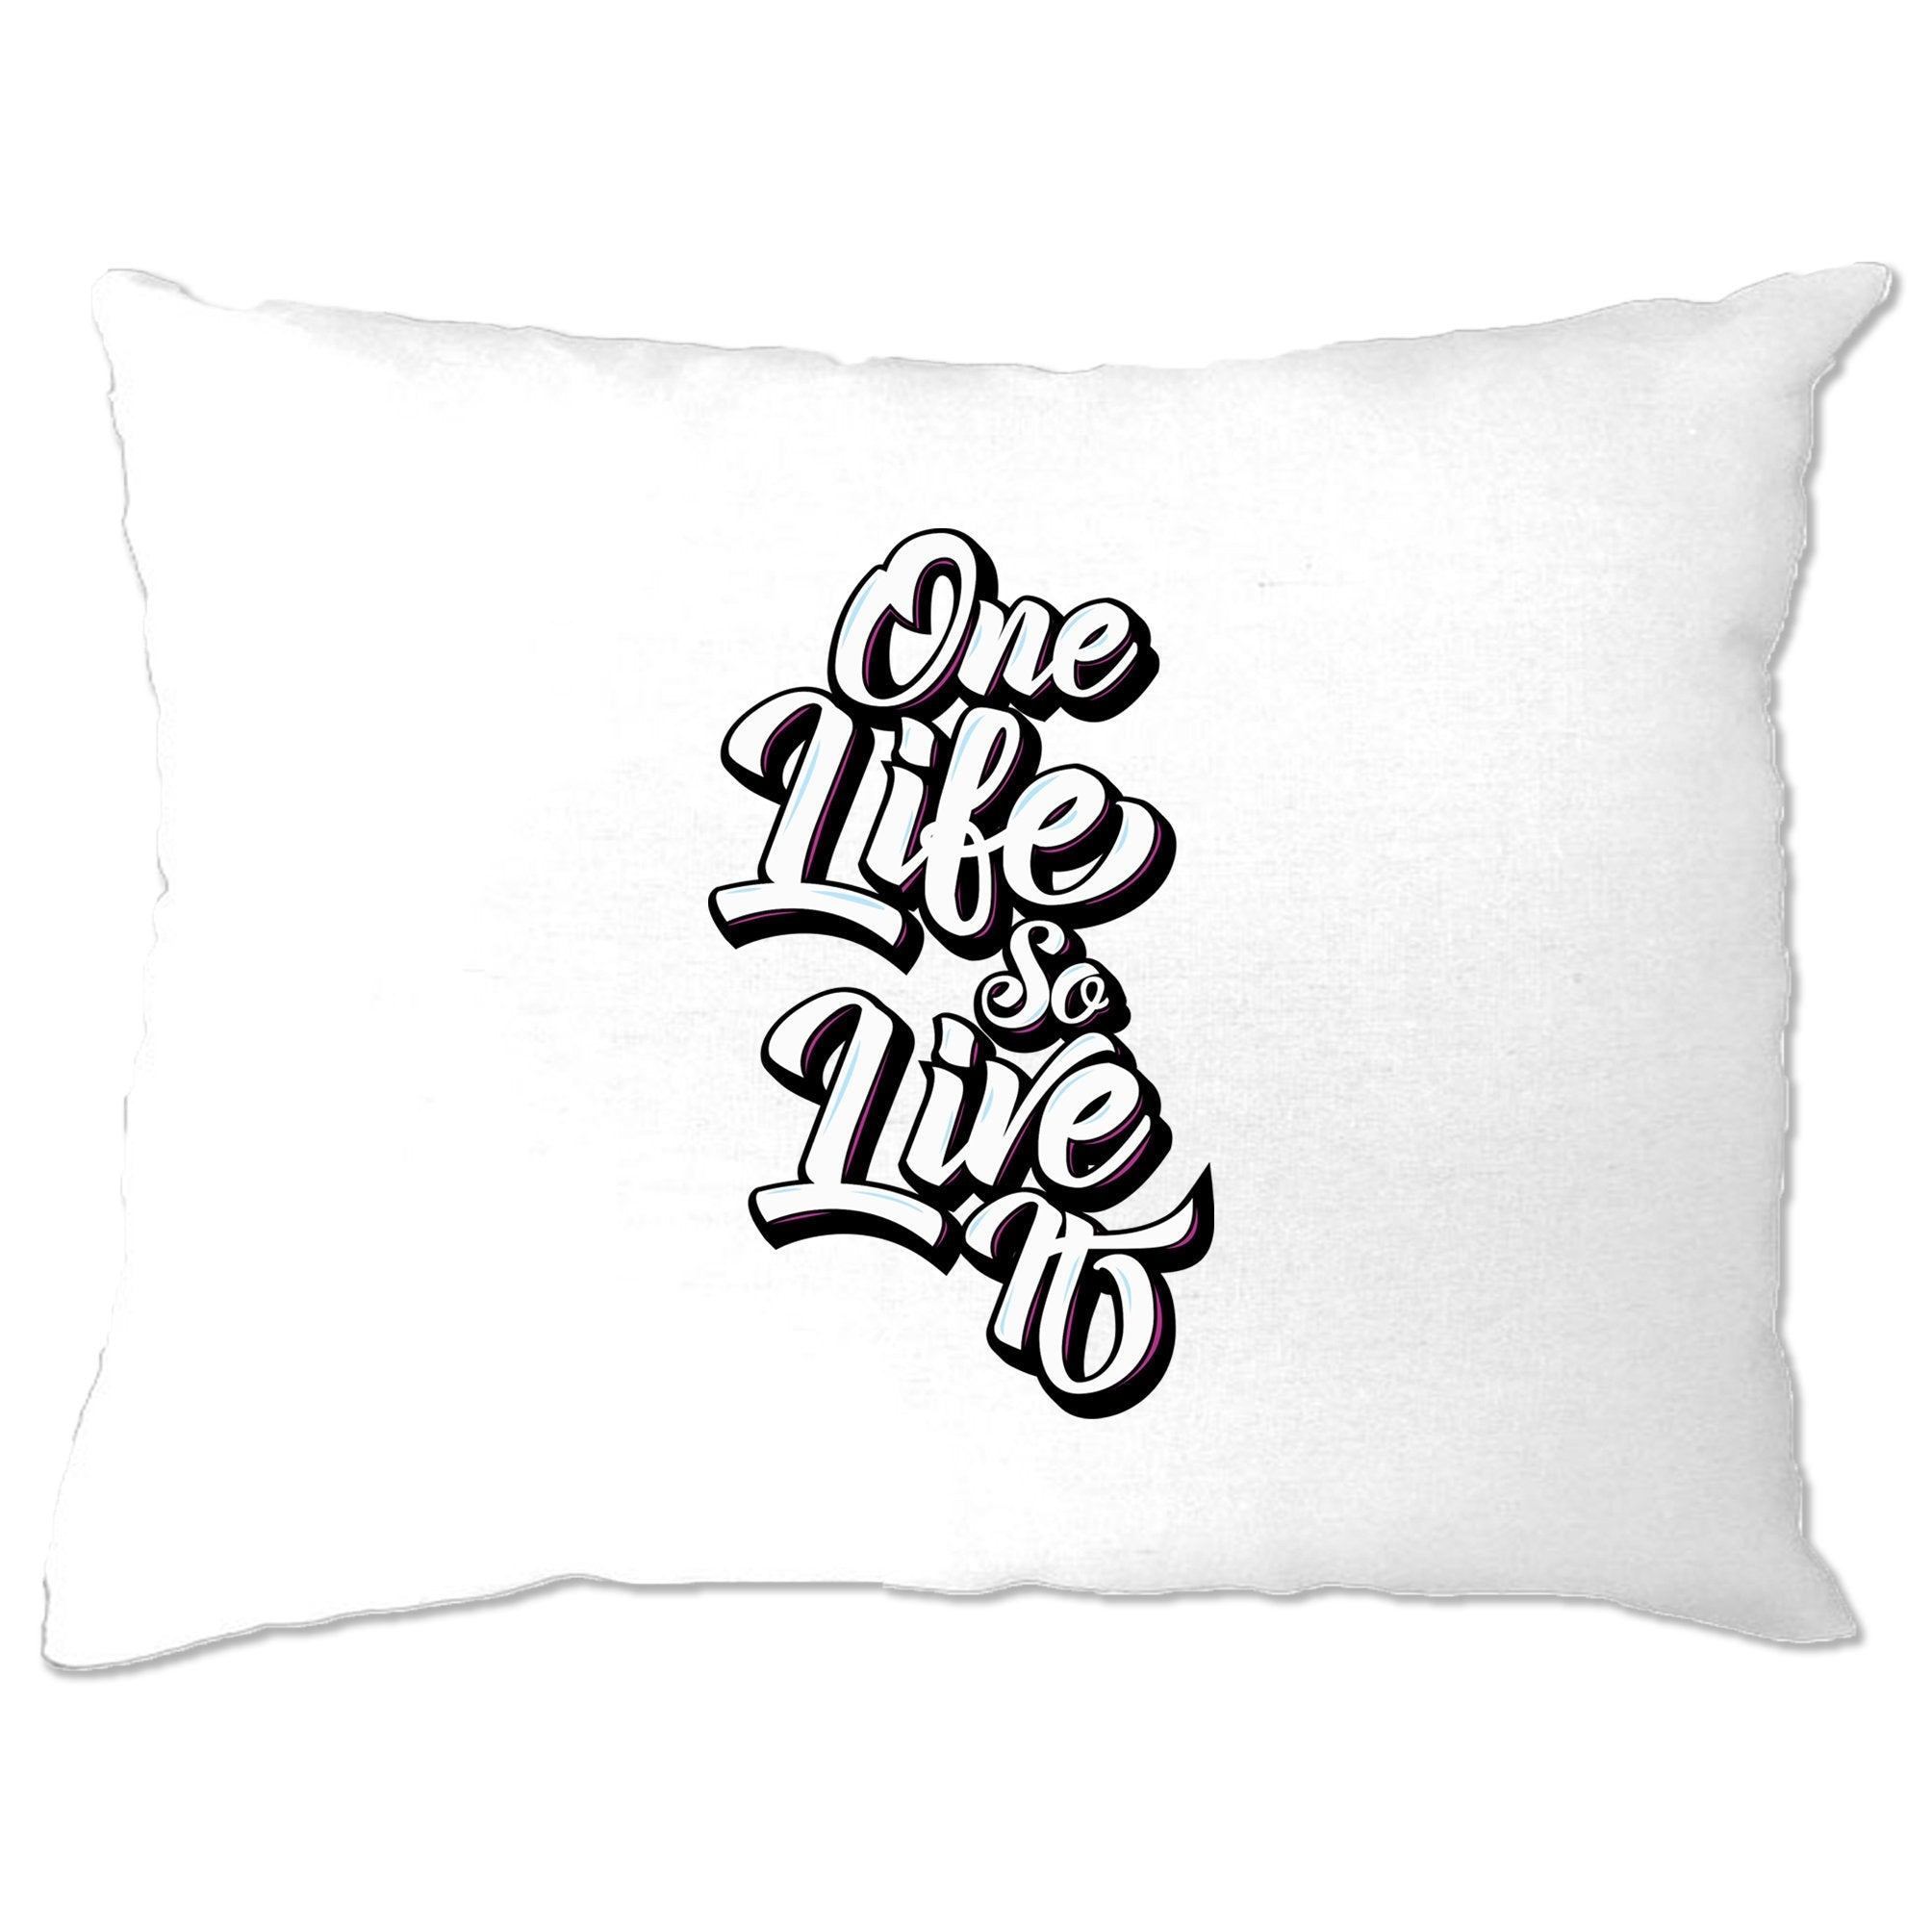 Inspirational Pillow Case You Have One Life, So Live It